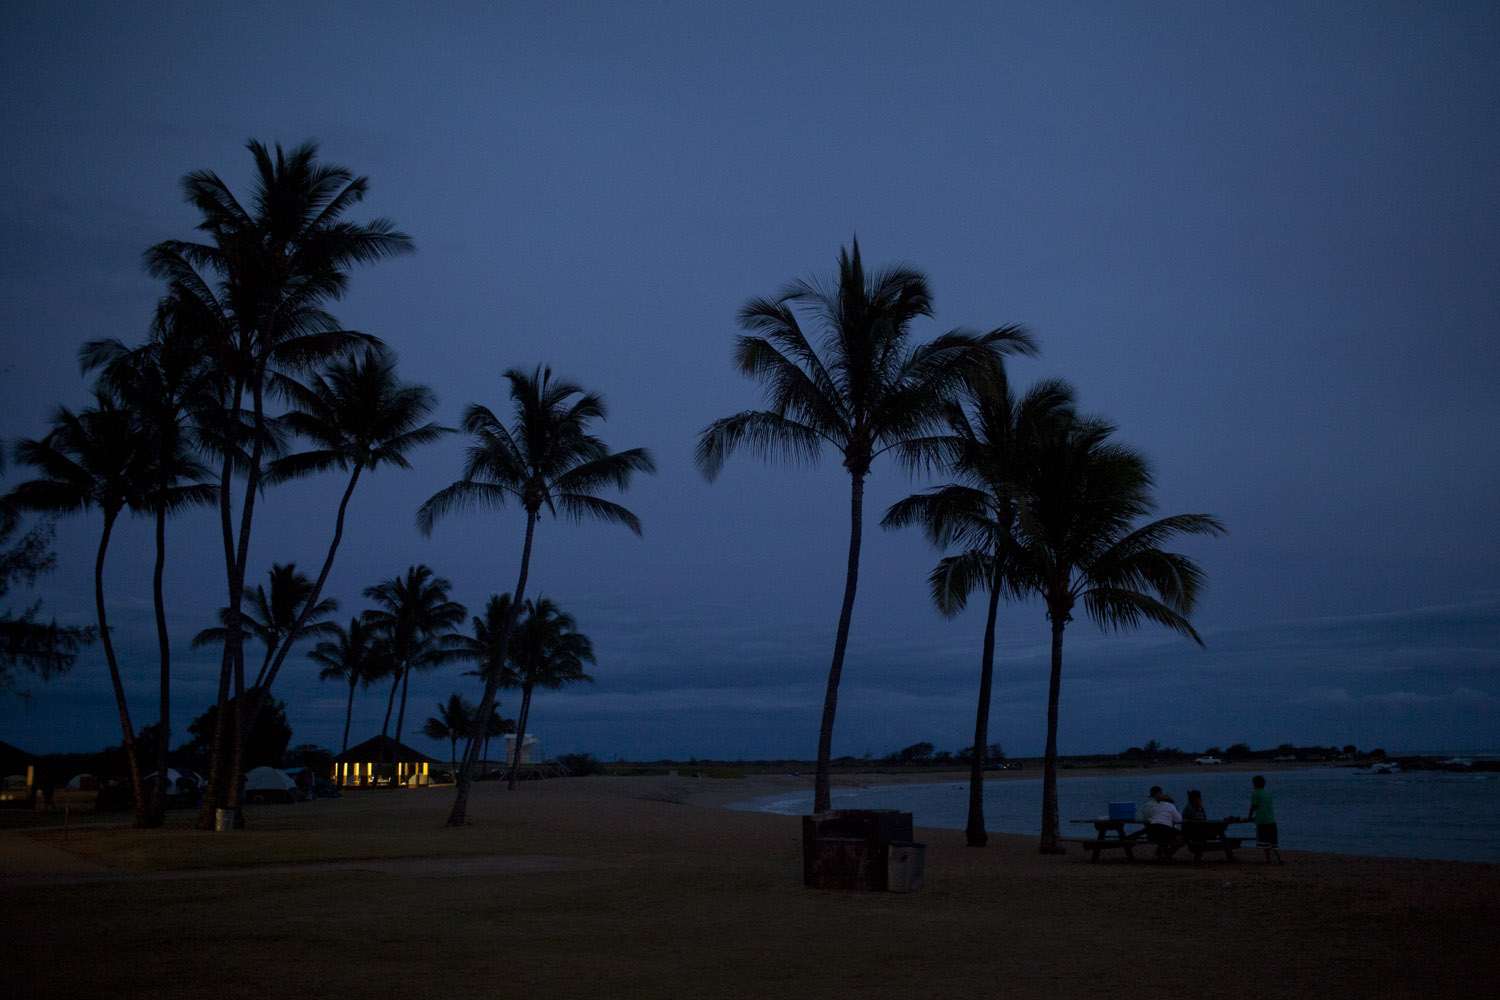 130322_jms_hawaii_0004.jpg